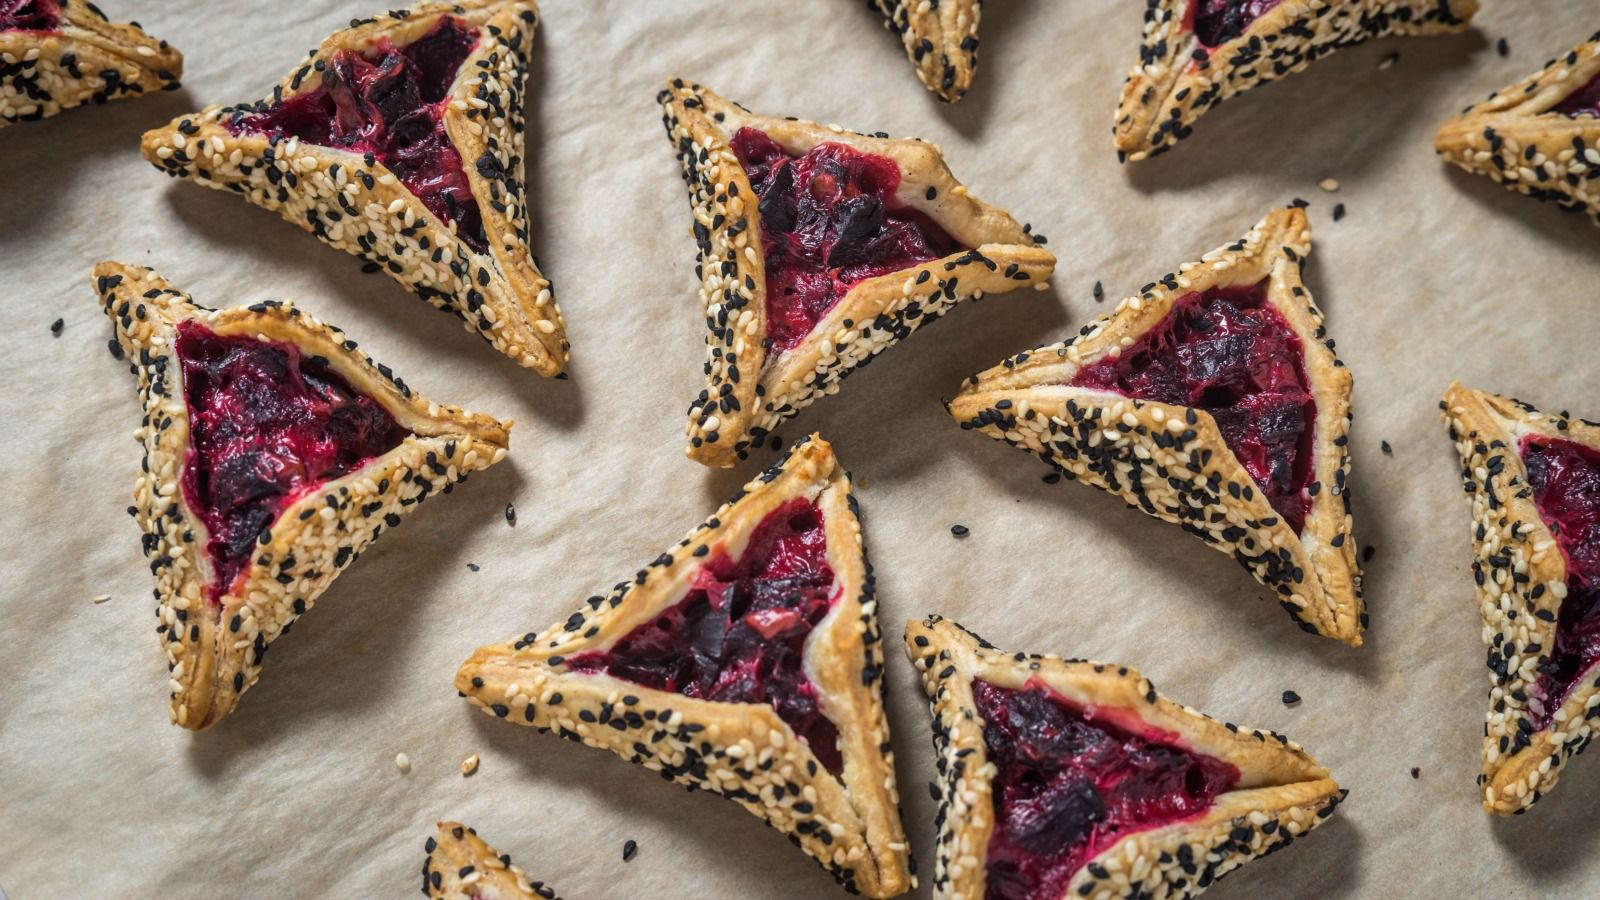 Roasted beet hamantaschen from Breads Bakery.